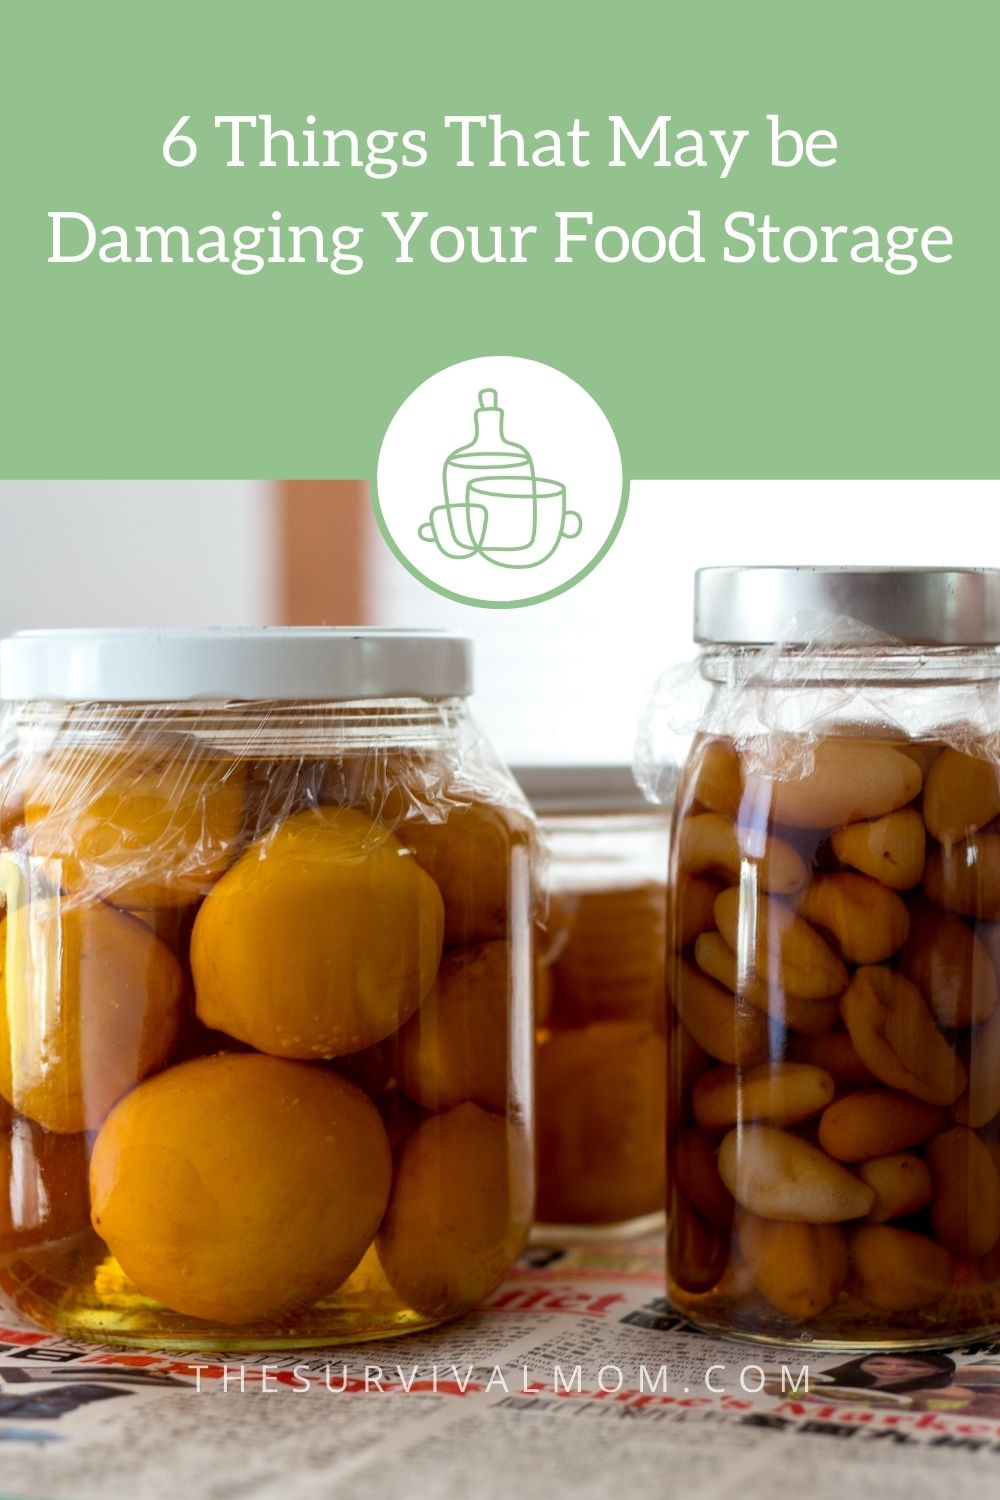 image: jars of preserved food, canned food for food storage, jars of preserved lemons and garlic